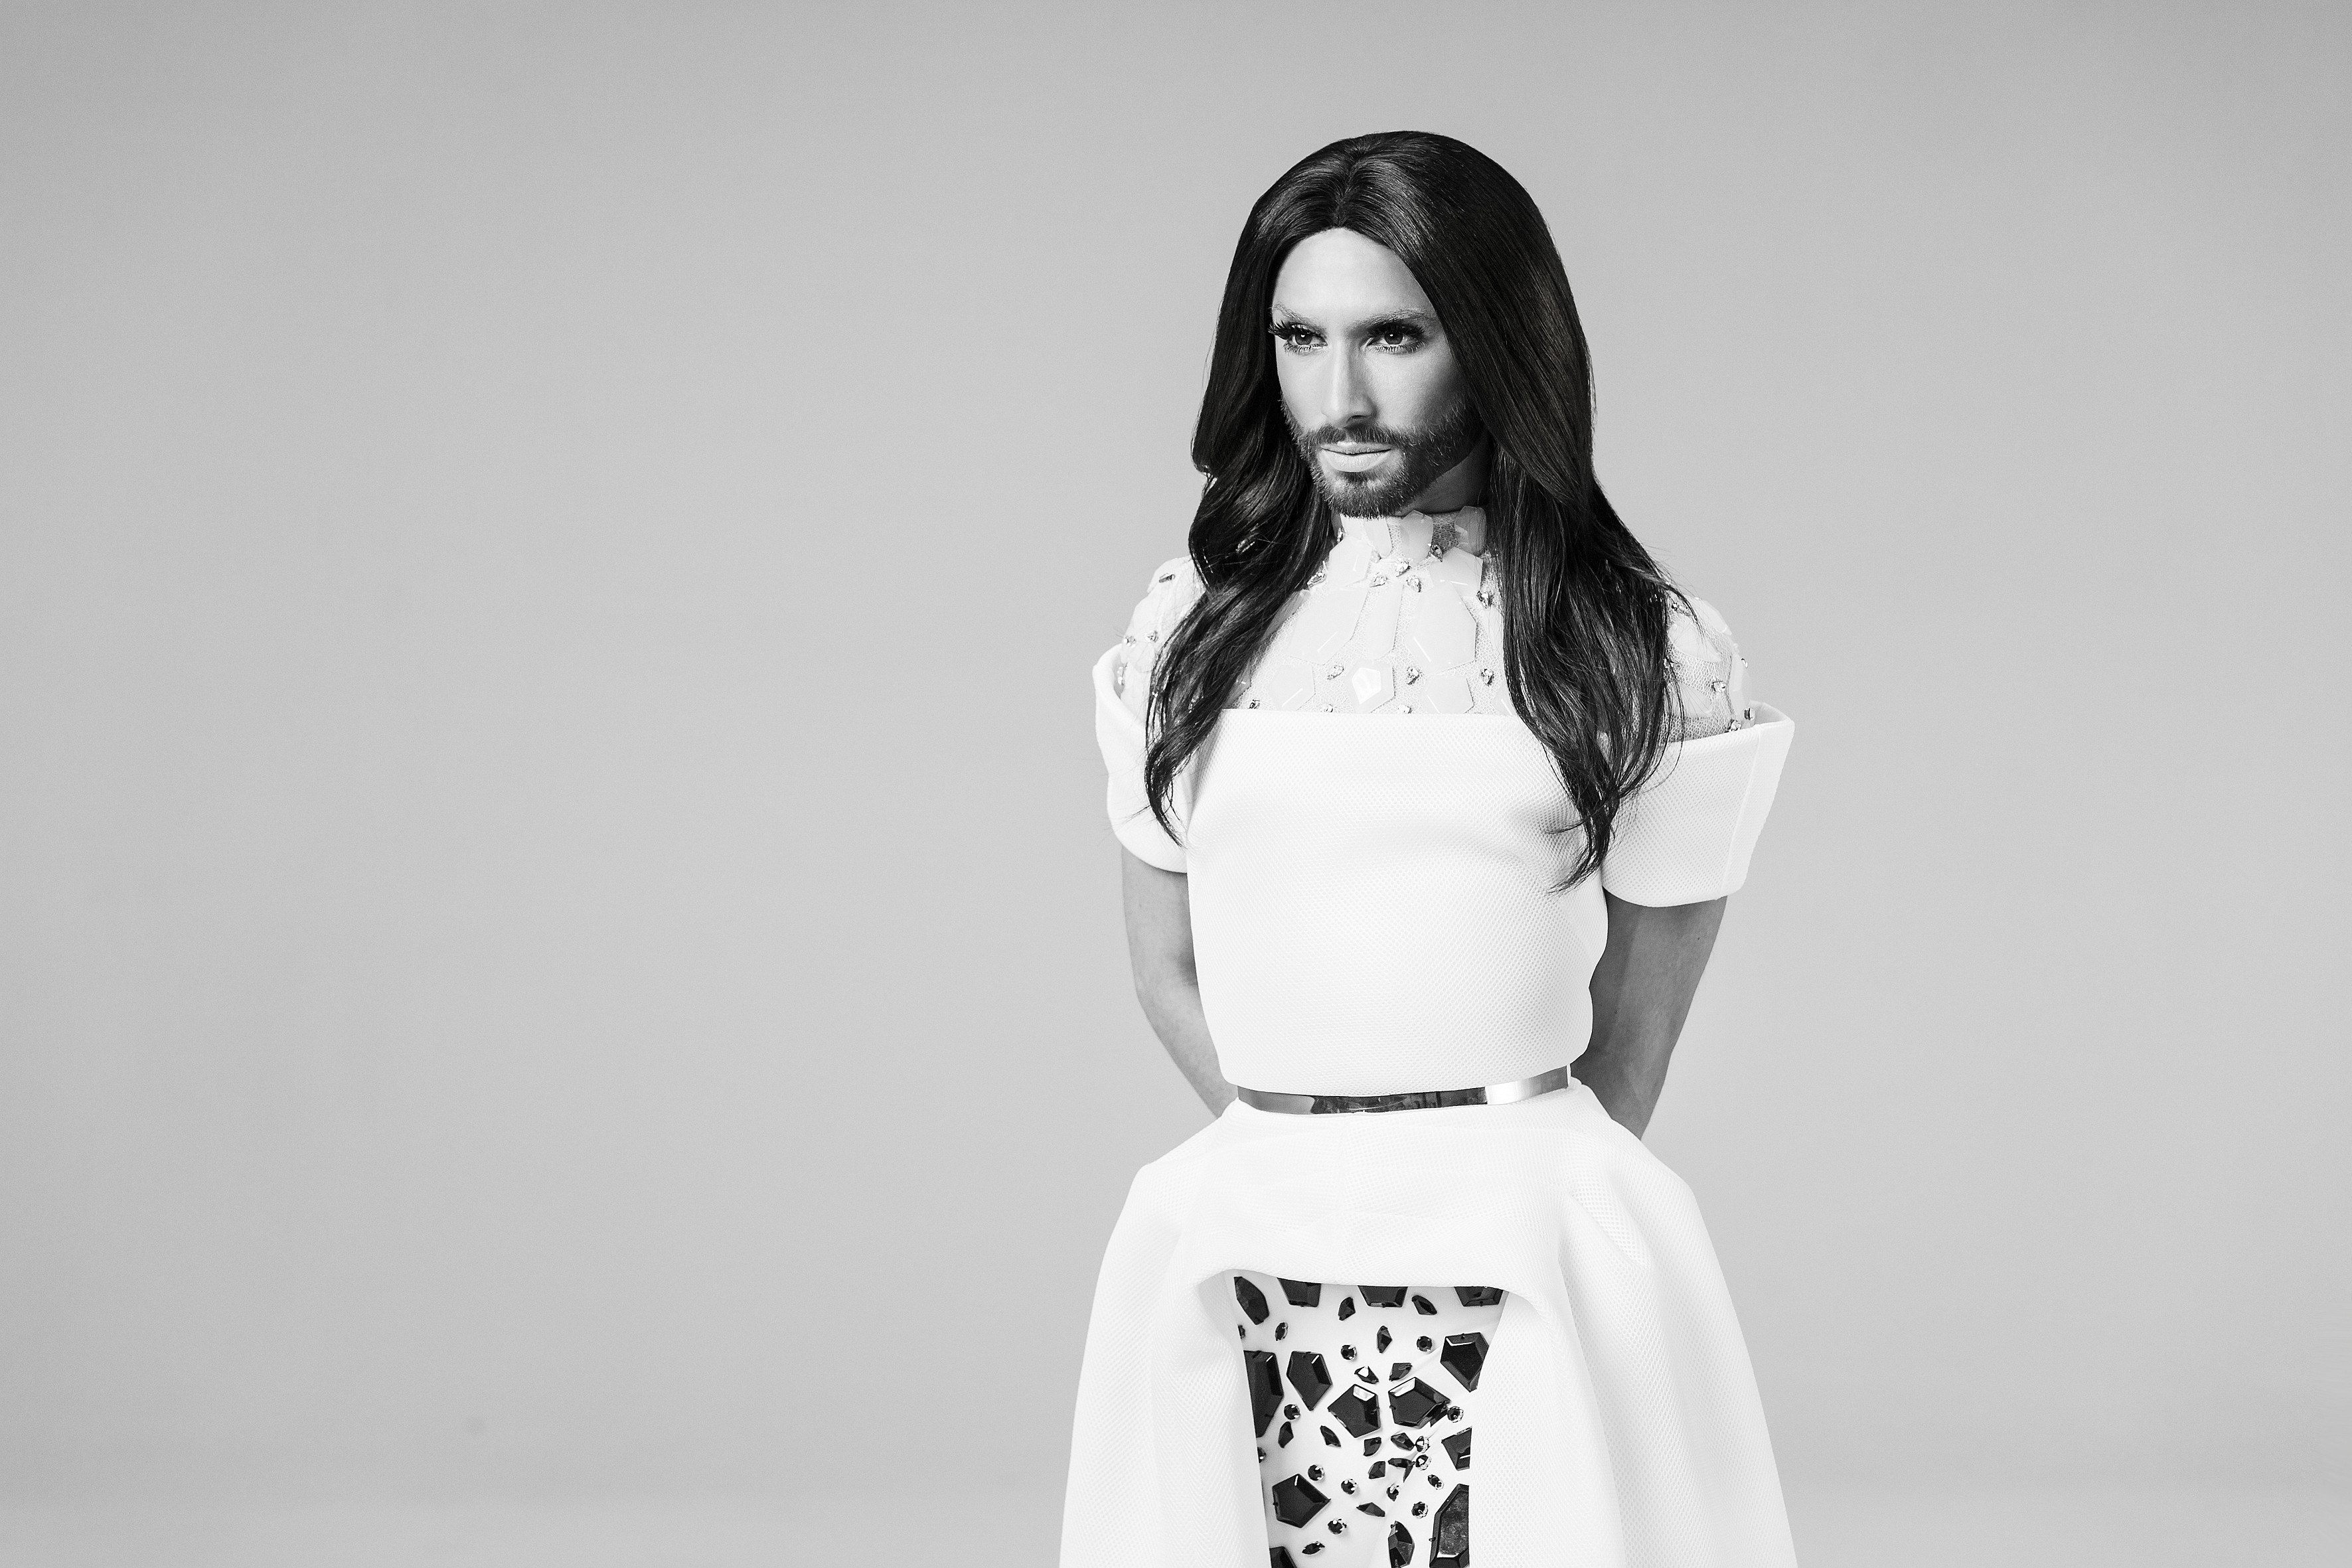 Interview: Conchita Wurst